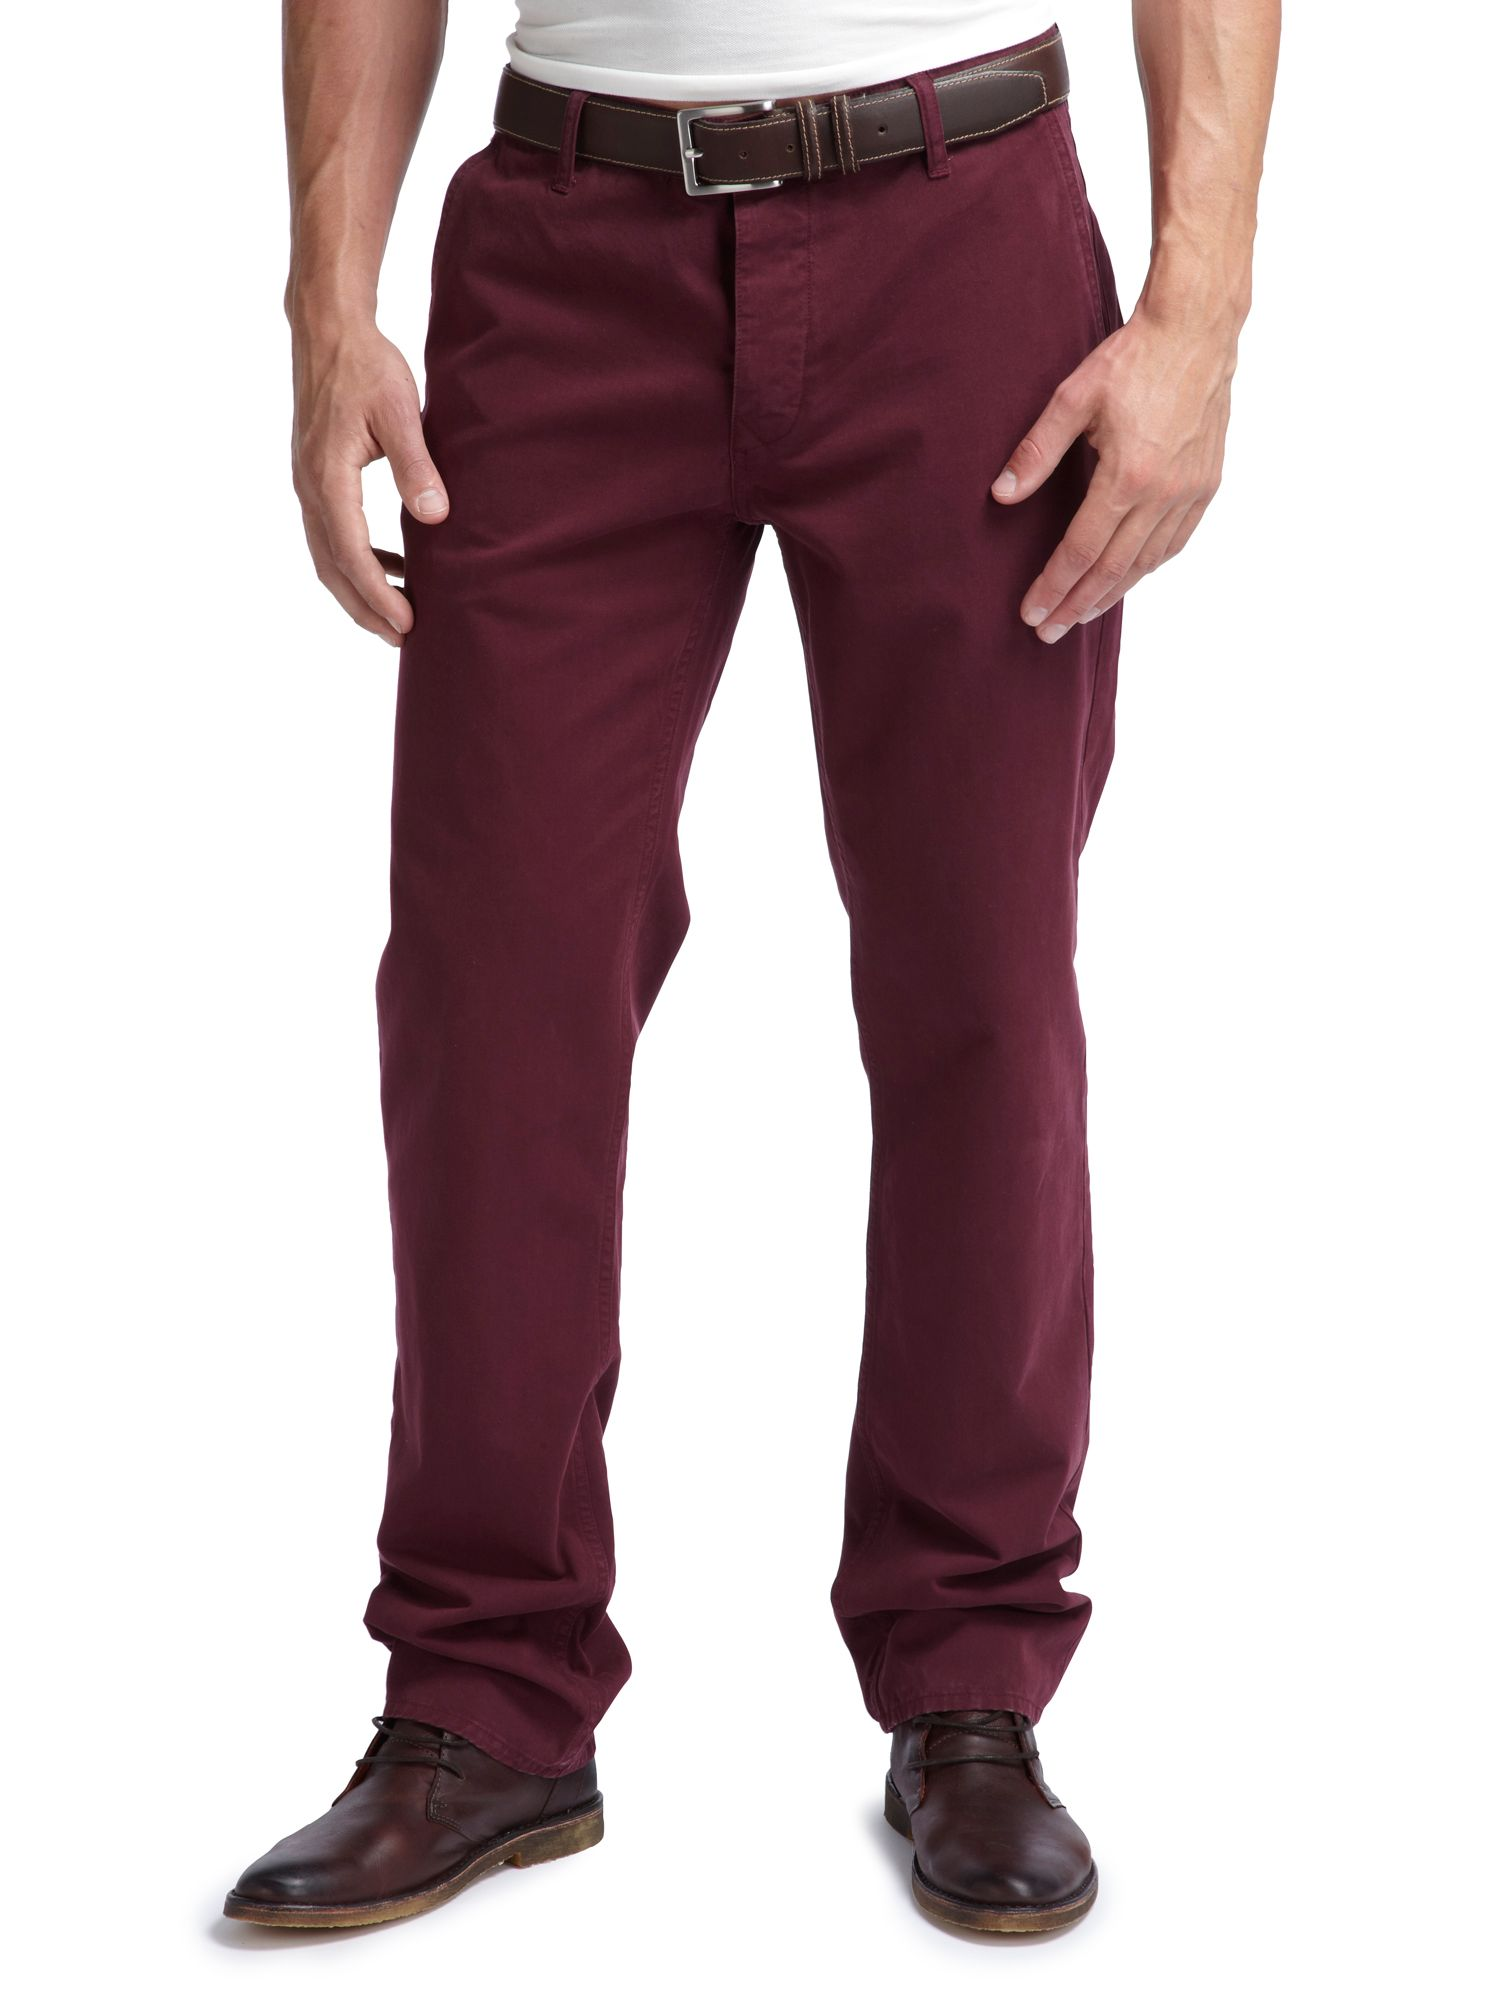 Piper regular pant